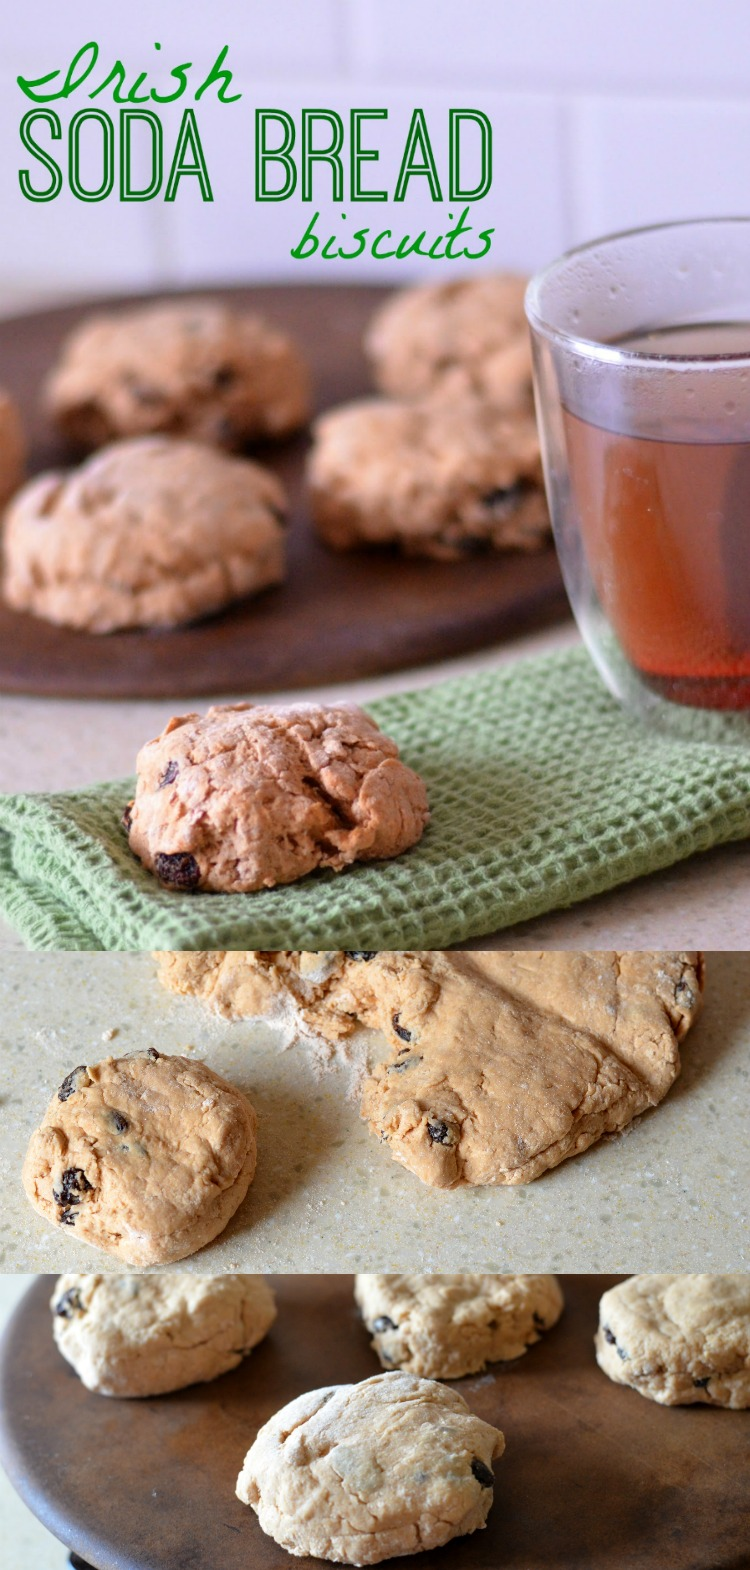 These Irish Soda Bread Biscuits are sure to hit all of the right spots when you pair it with a delicious cup of tea or coffee morning, noon, or night! They're so simple to whip up on a lazy Sunday.